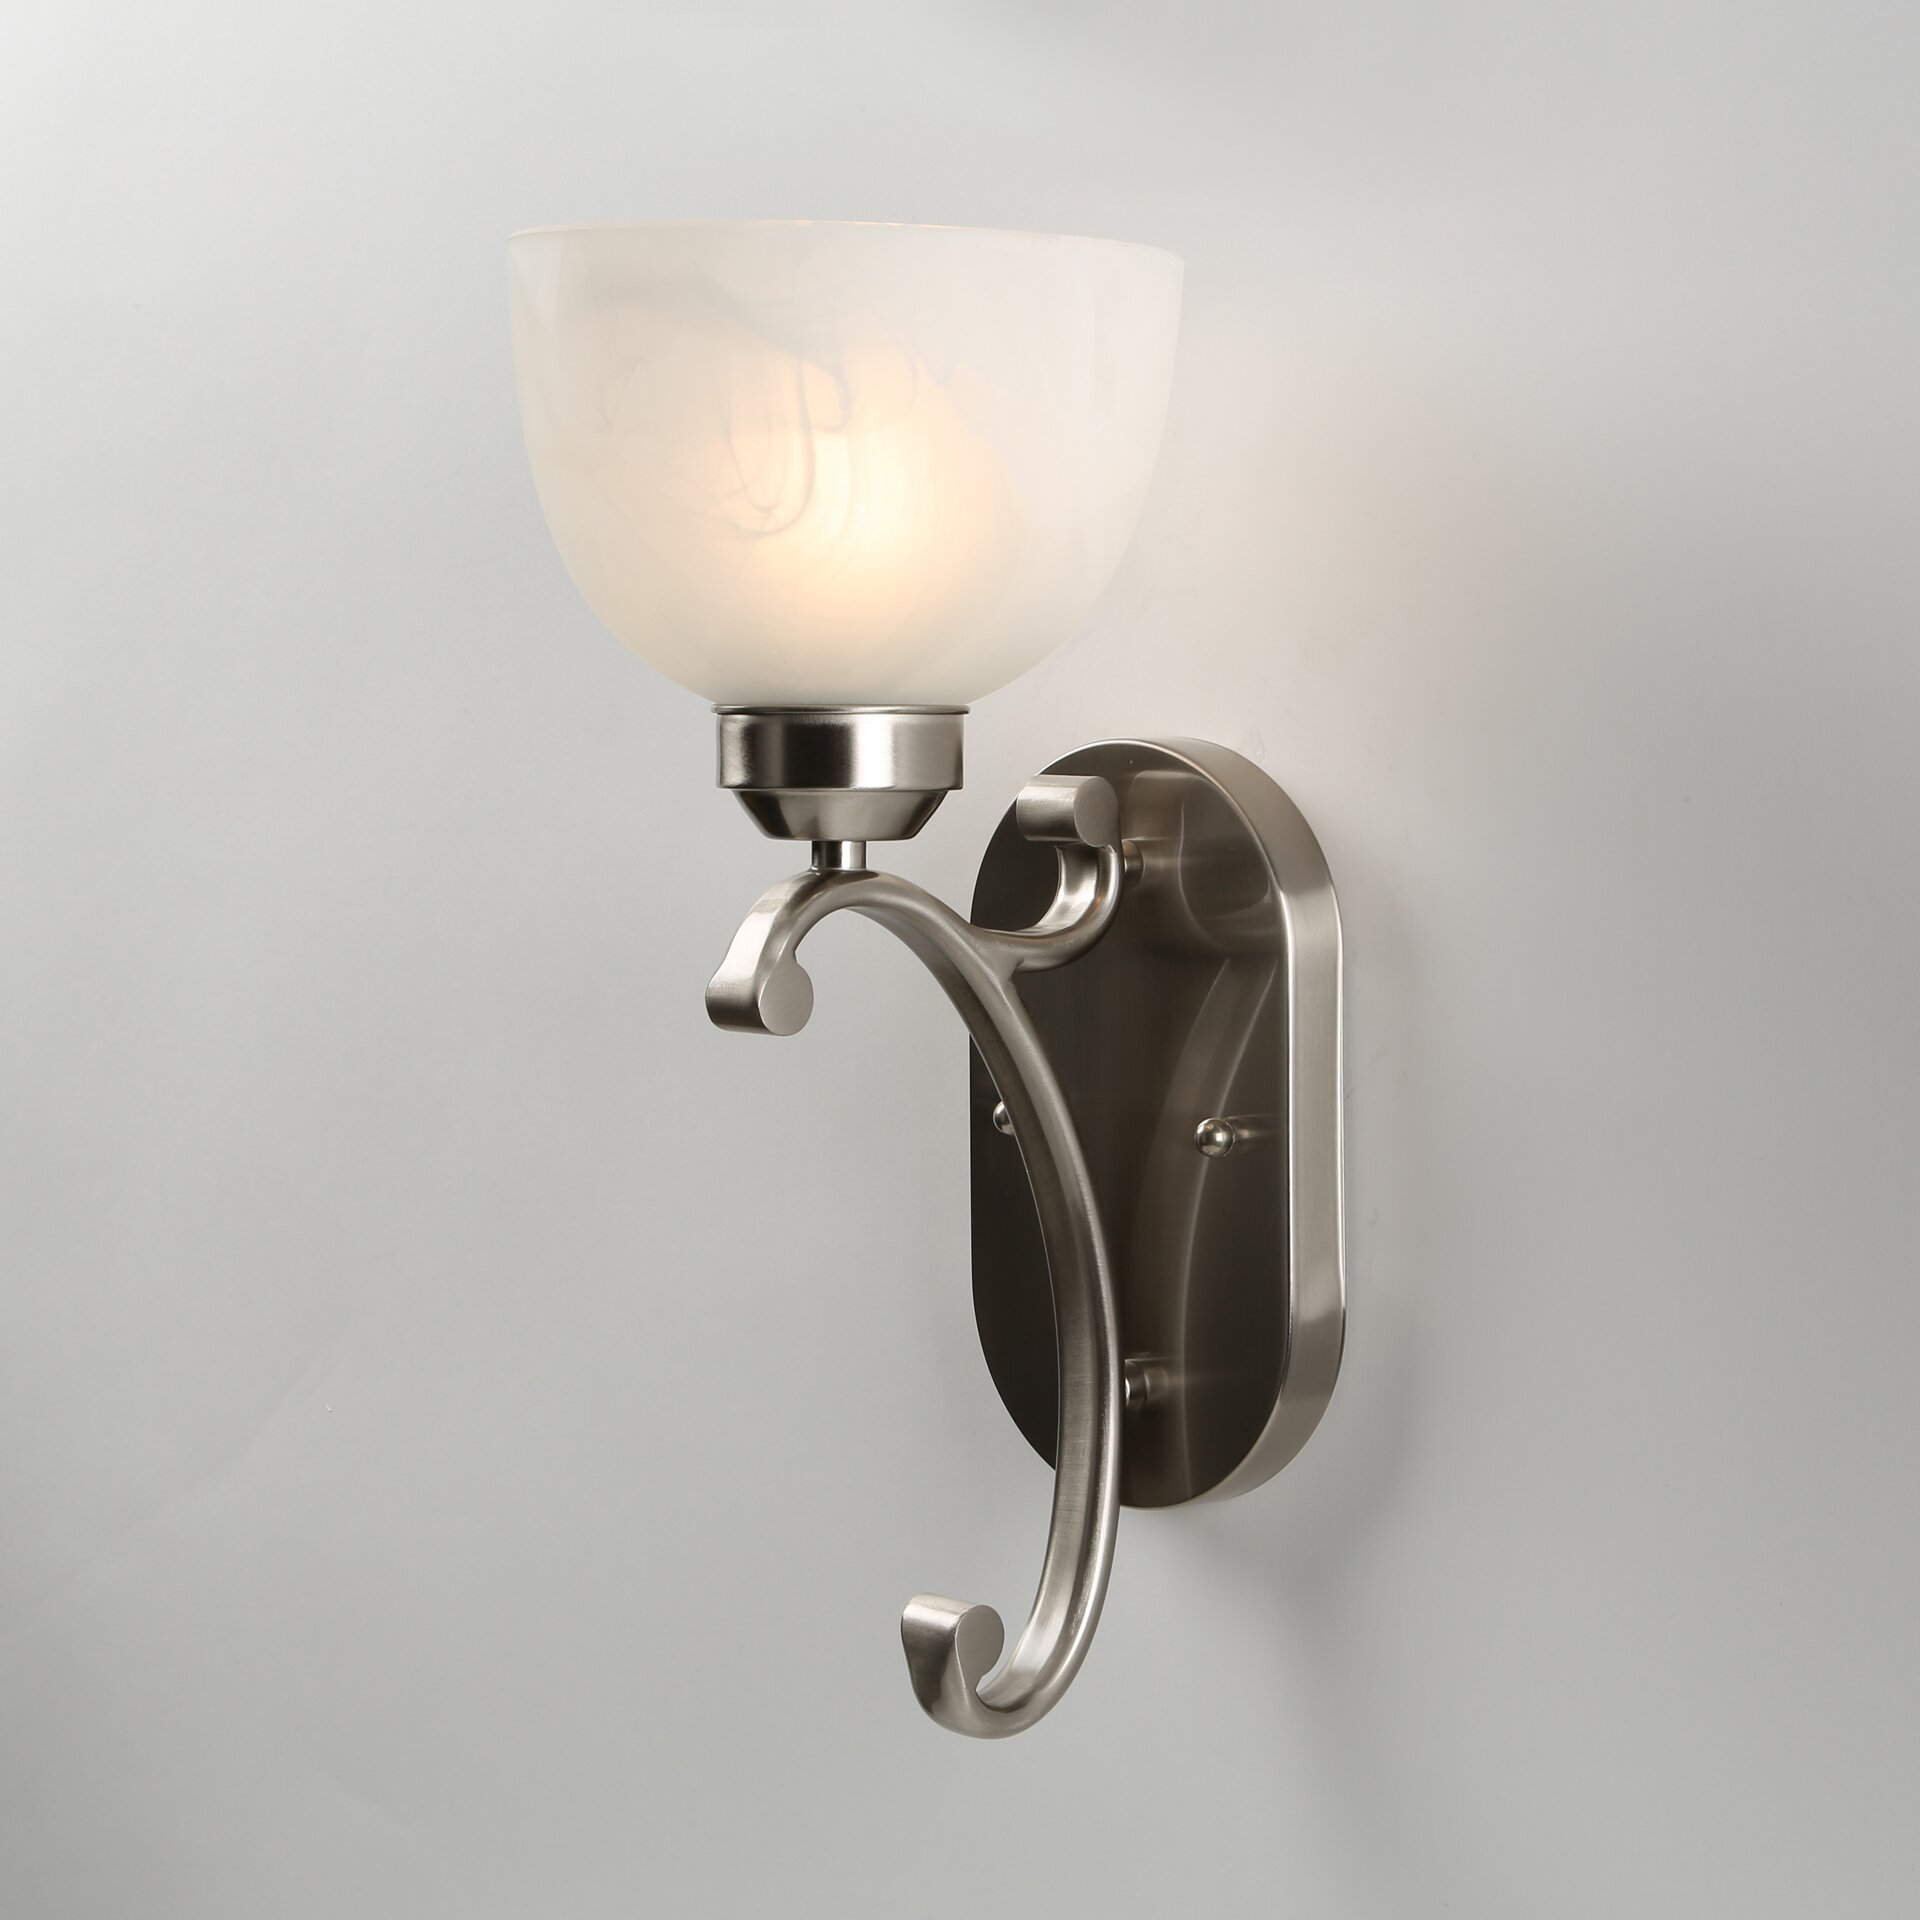 Wall Sconce With Magnifying Glass : Minka Lavery Paradox 1 Light Wall Sconce & Reviews Wayfair.ca